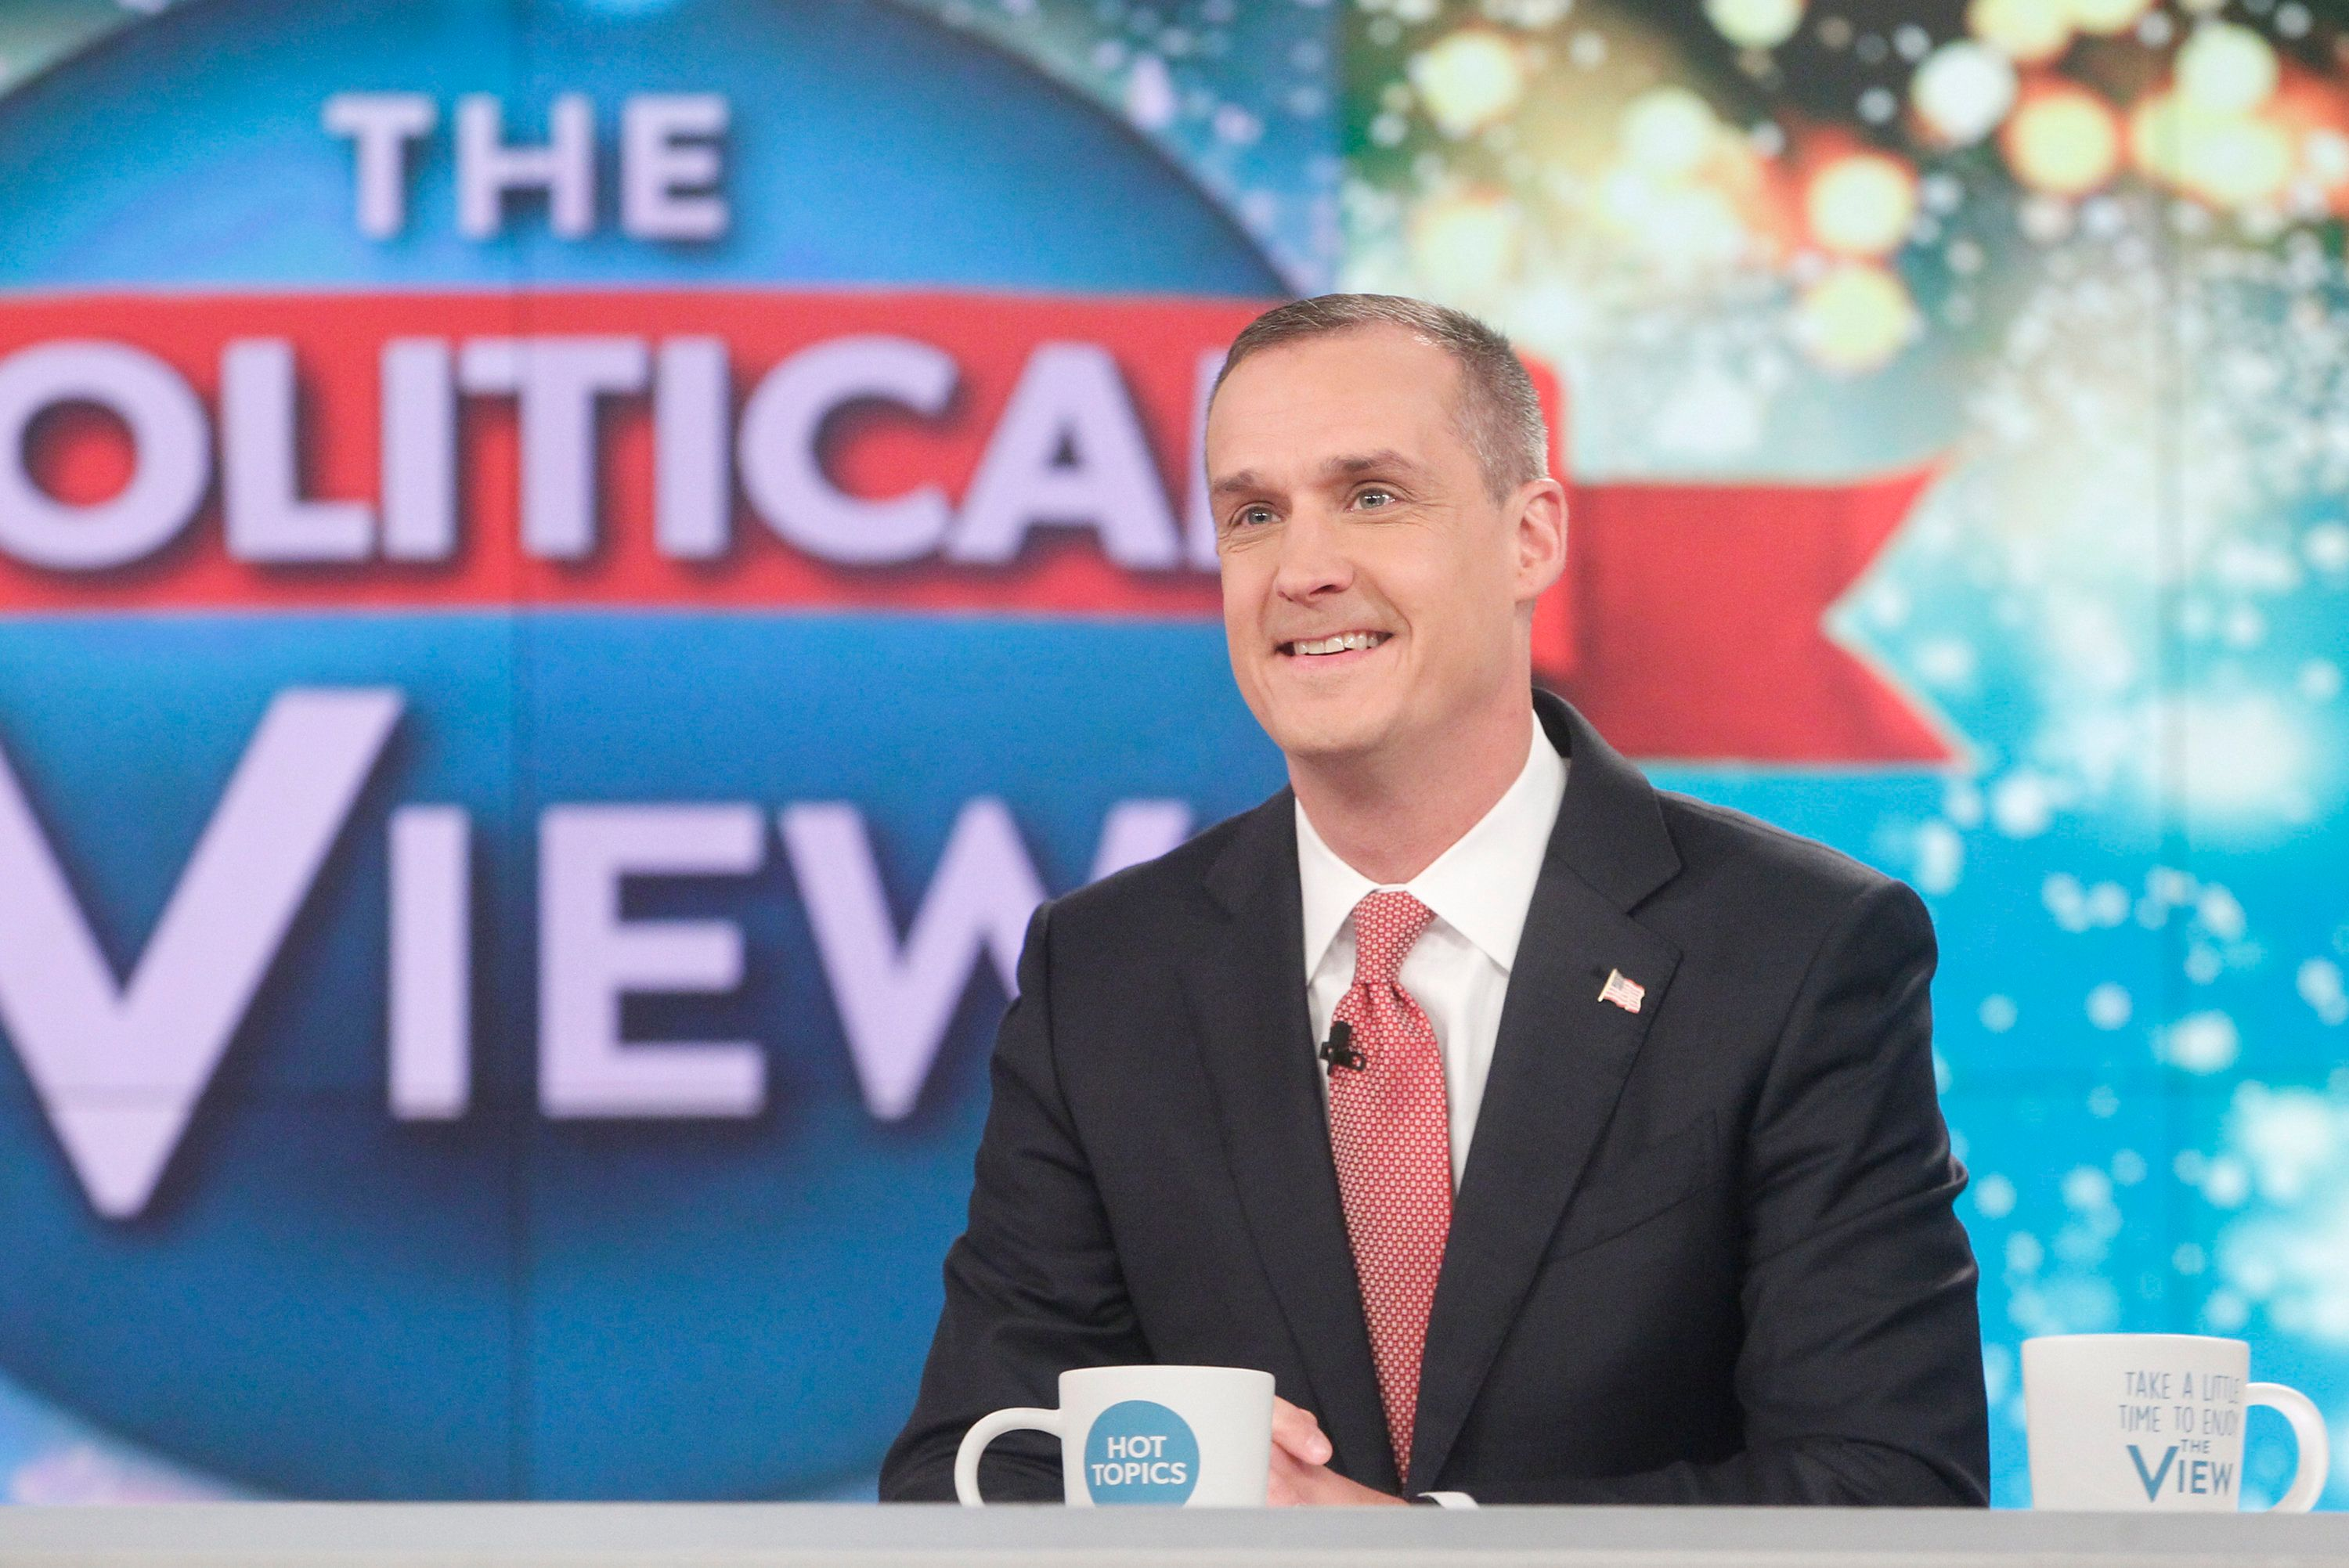 THE VIEW - Corey Lewandowski and Keegan-Michael Key  are the guests today, Wednesday, December 5, 2017 on ABC's 'The View.'   'The View' airs Monday-Friday (11:00 am-12:00 pm, ET) on the ABC Television Network.     (Photo by Lou Rocco/ABC via Getty Images)   COREY LEWANDOWSKI